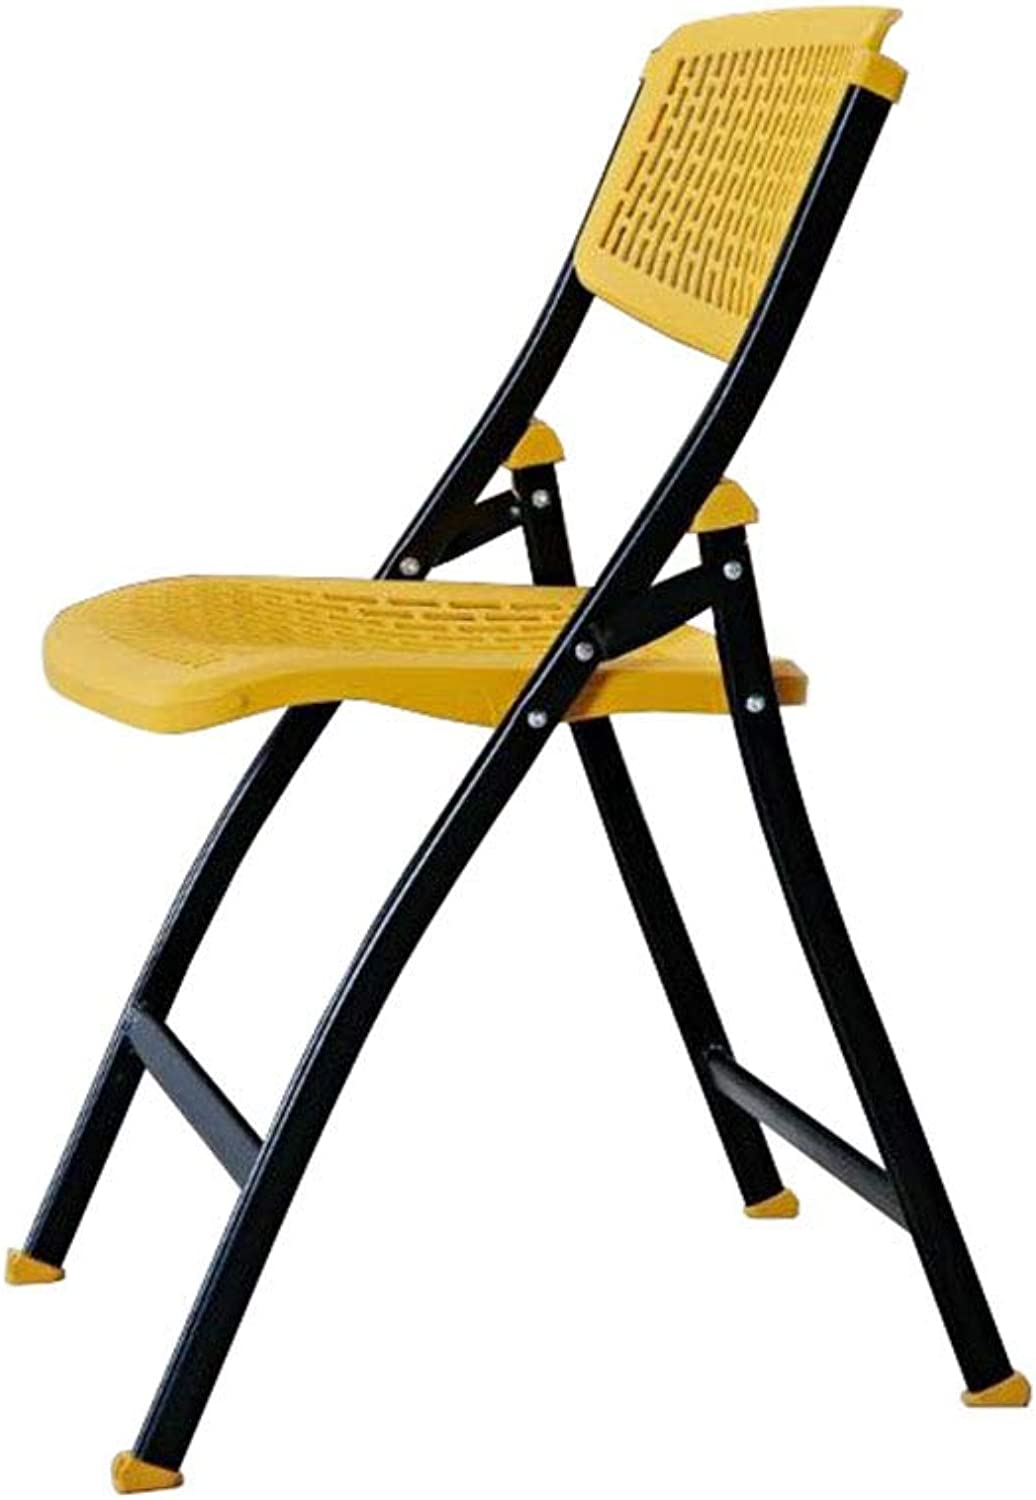 Folding Chair Training Meeting Chair Computer Backrest Chair Yellow Padded Breathable Leisure Portable